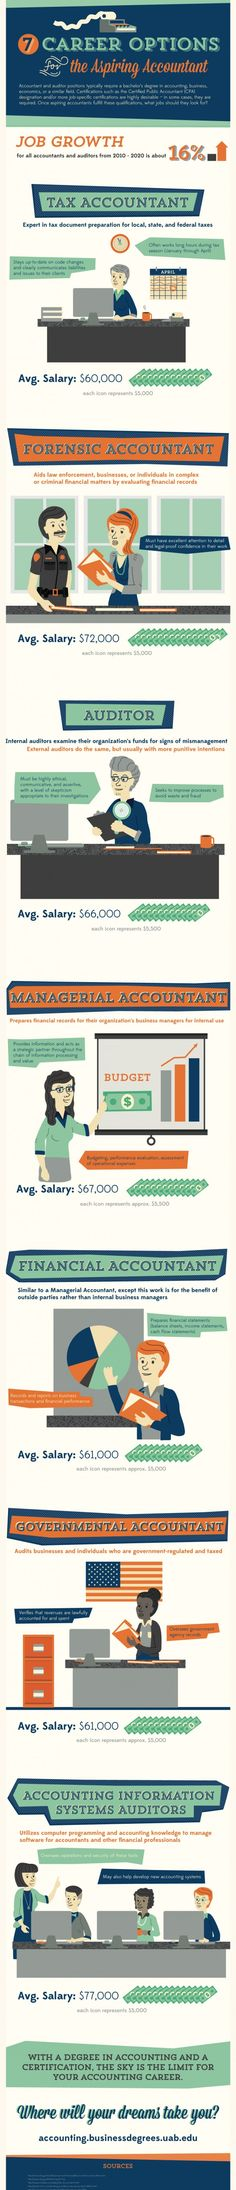 Forensic Accounting Job Opportunities u2013 Infographic Forensic - forensic auditor sample resume